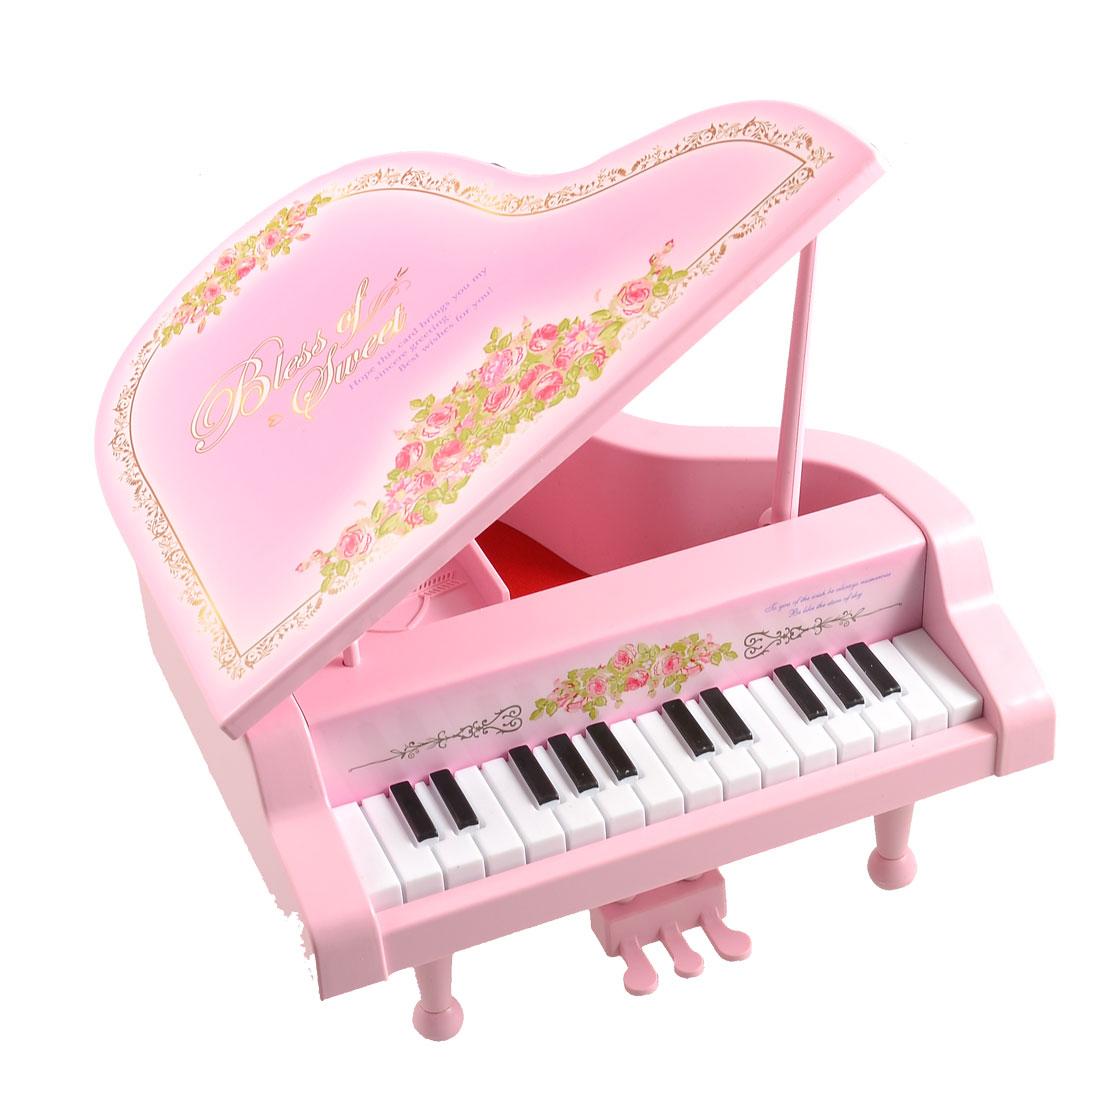 Floral Print Pink Plastic Piano Shaped Music Maker Box Jewelry Case for Child